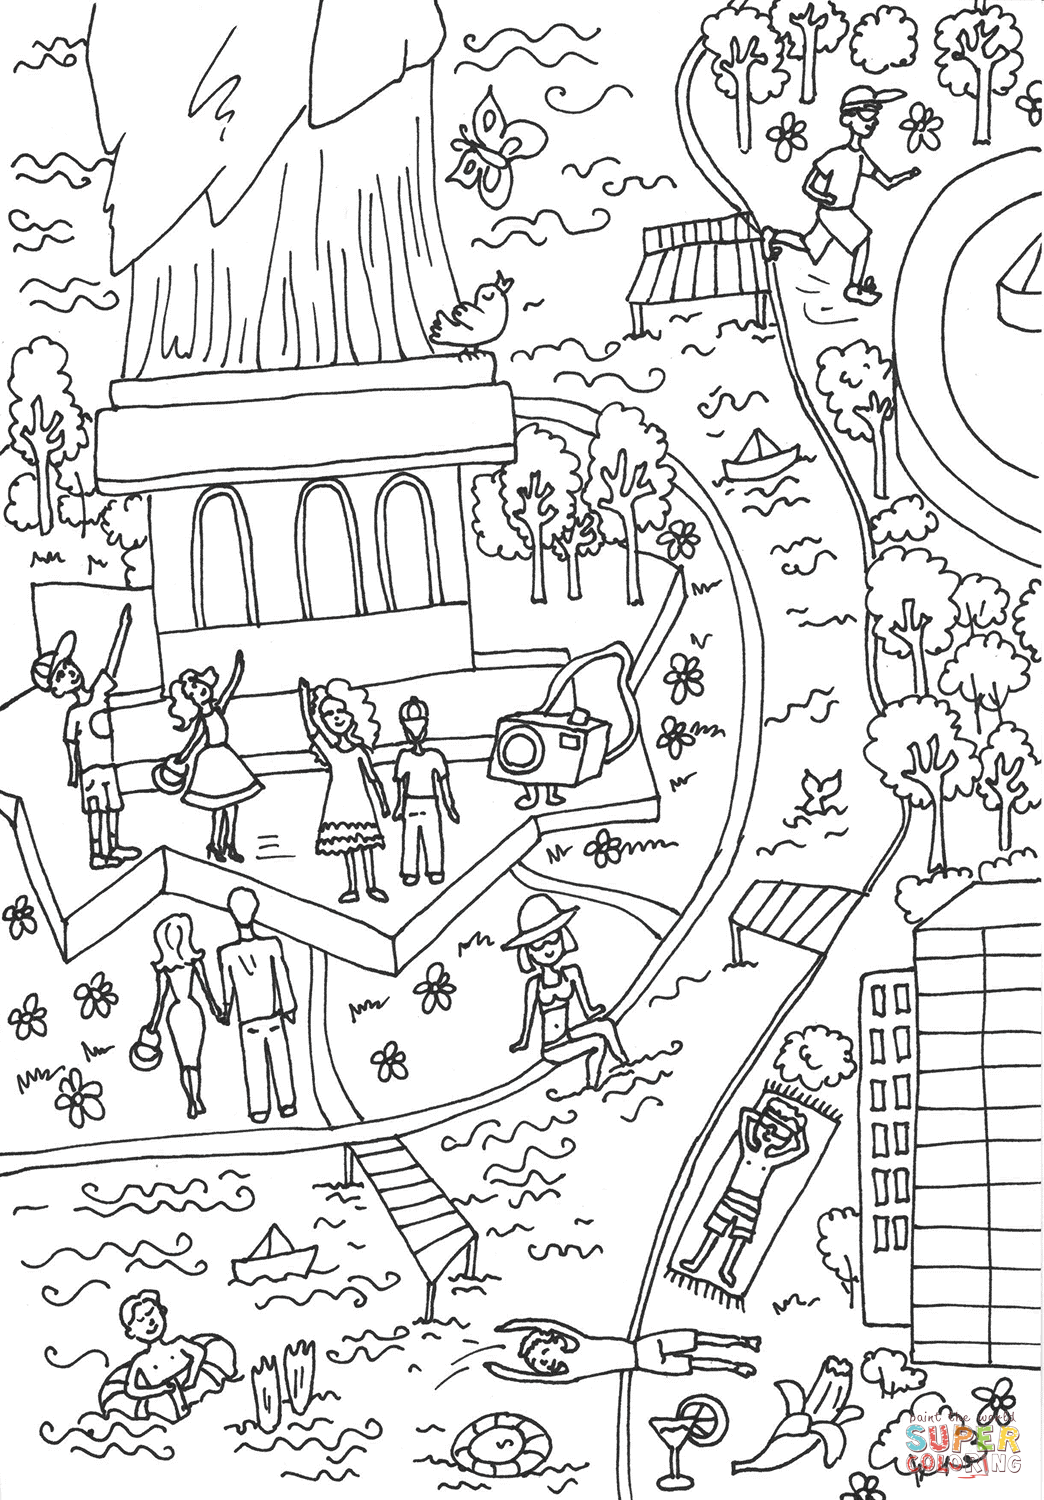 The Statue of Liberty, the Hudson River coloring page